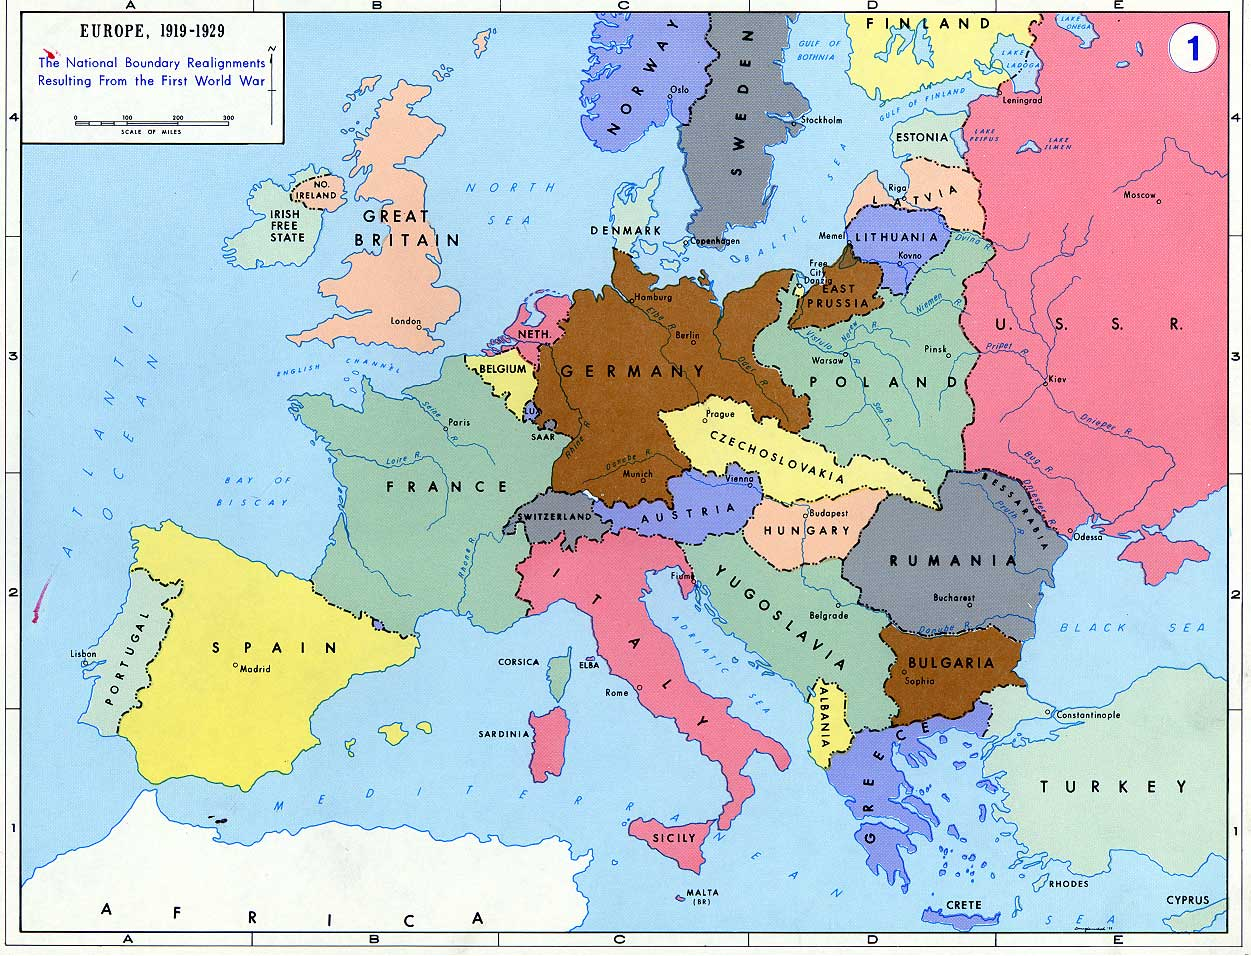 Europe on the world map etamemibawa europe on the world map gumiabroncs Image collections